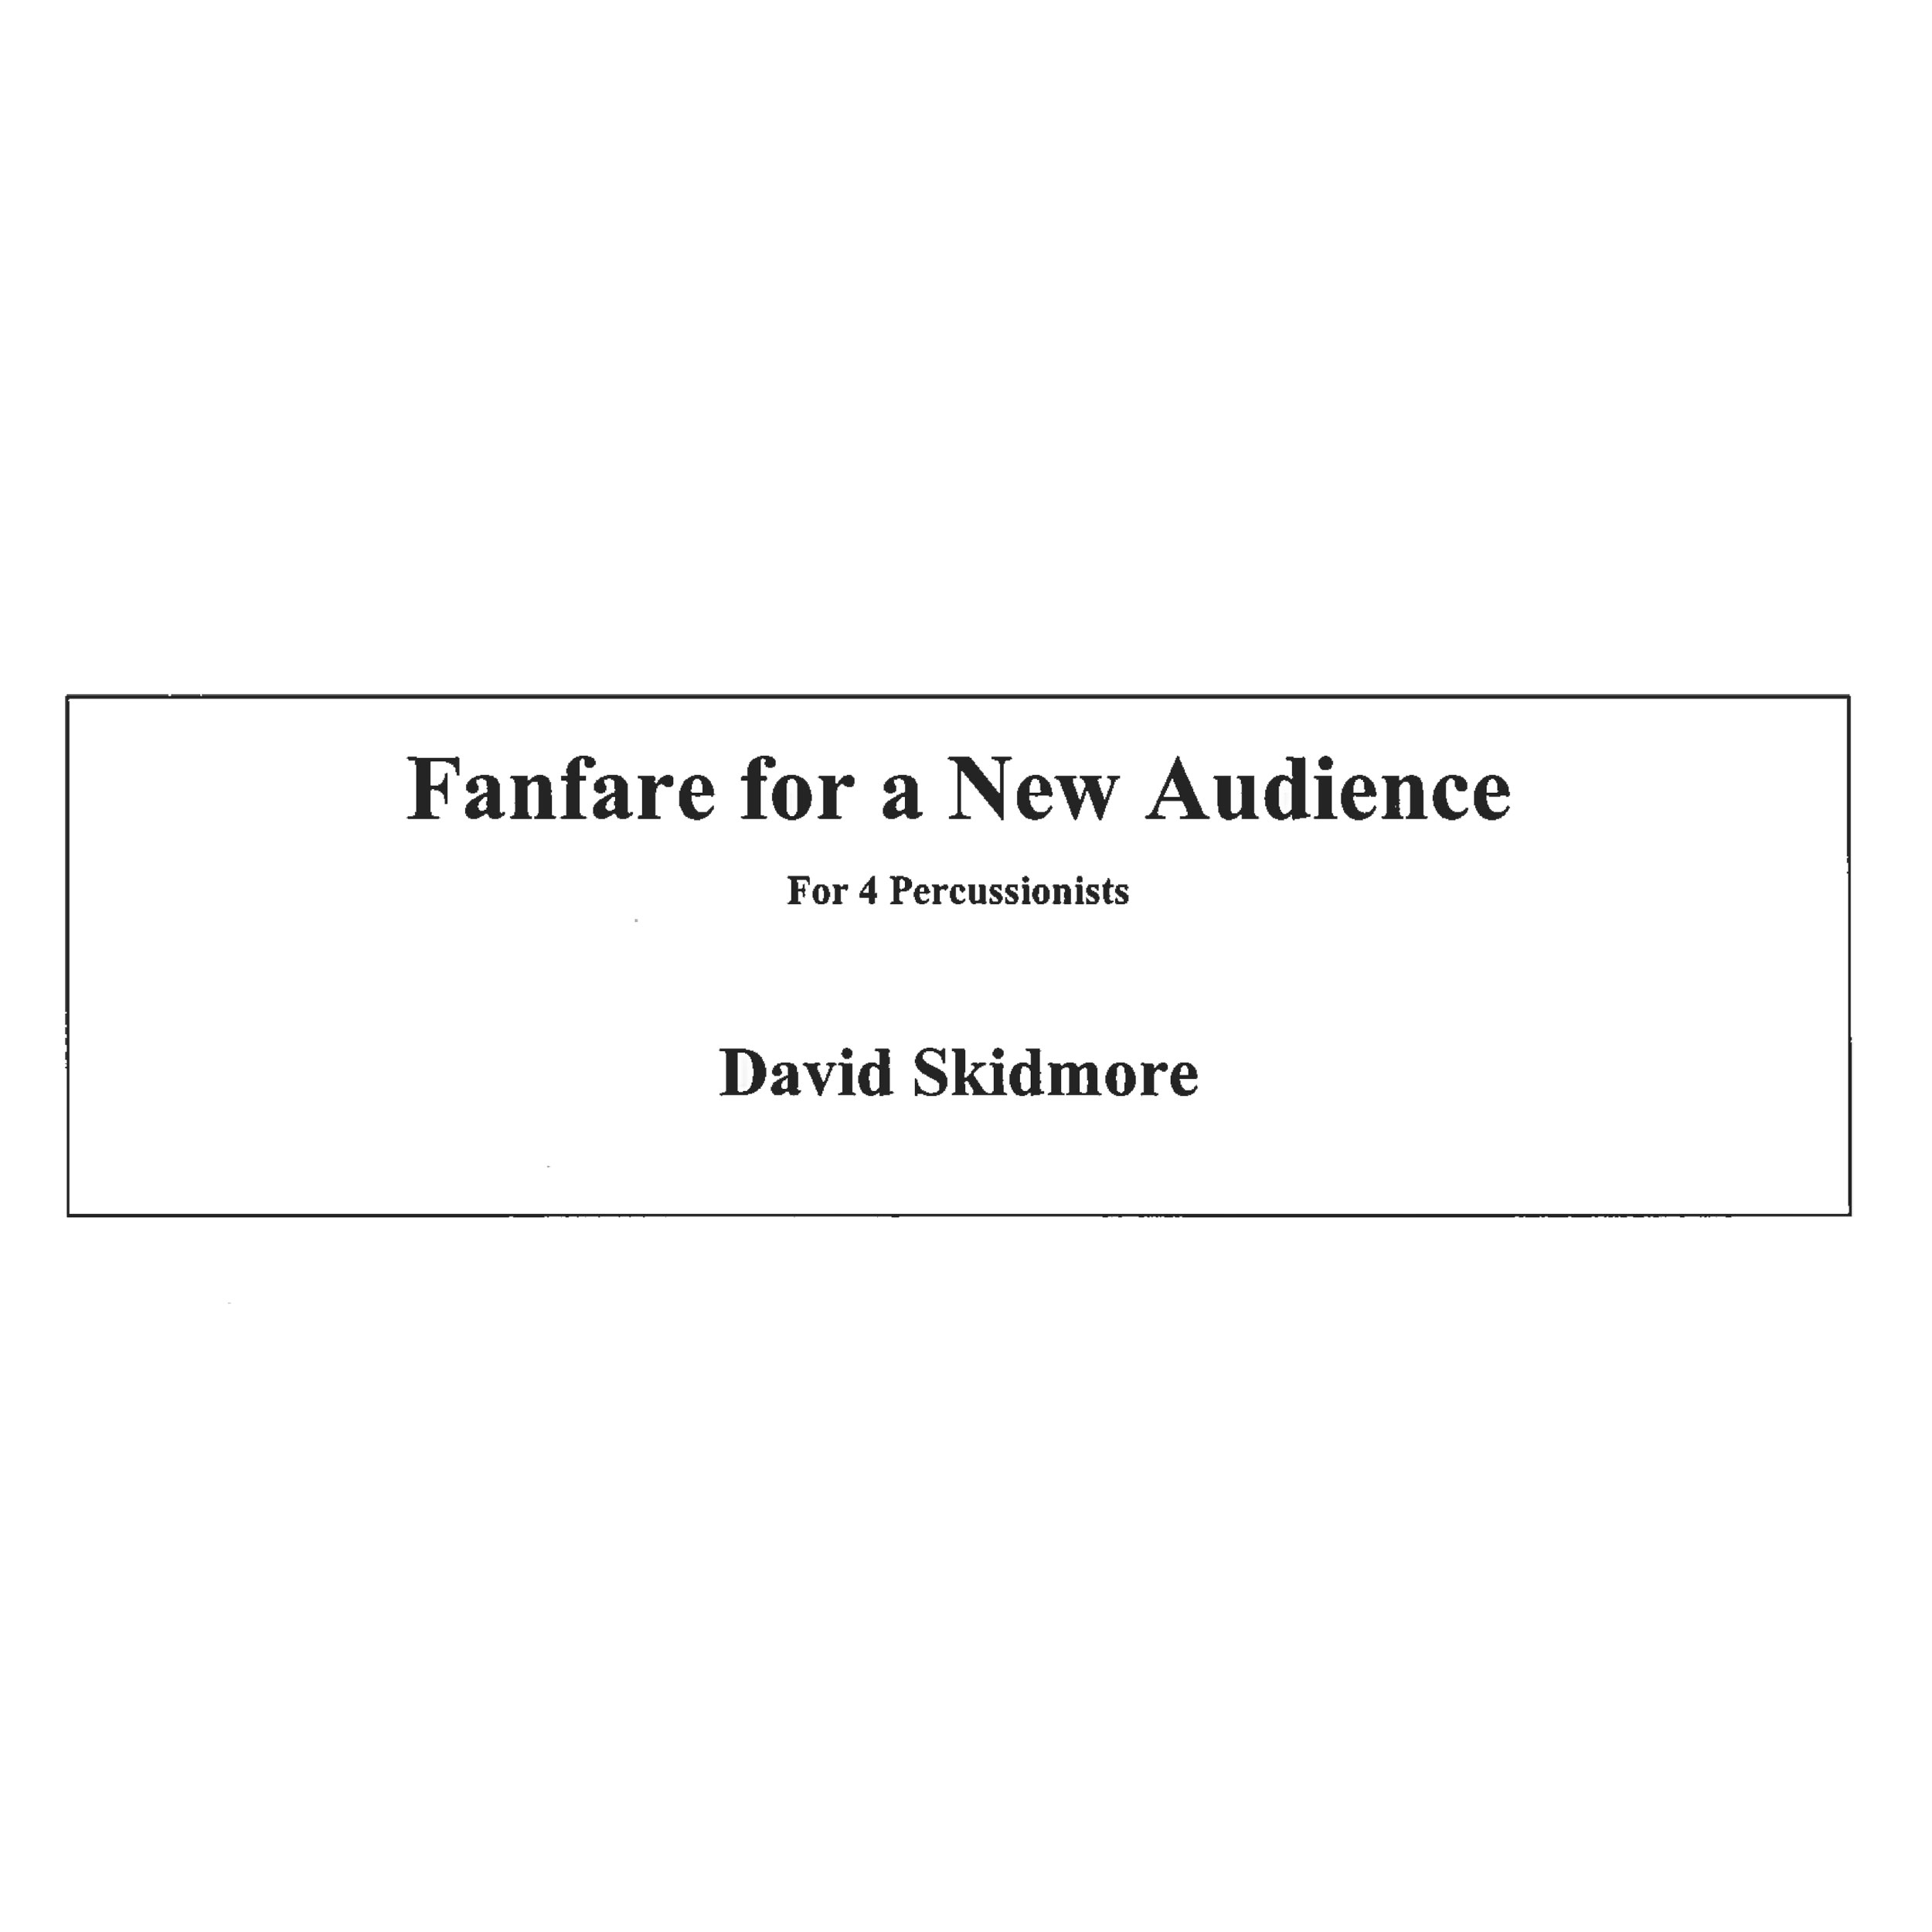 Fanfare for a New Audience by David Skidmore